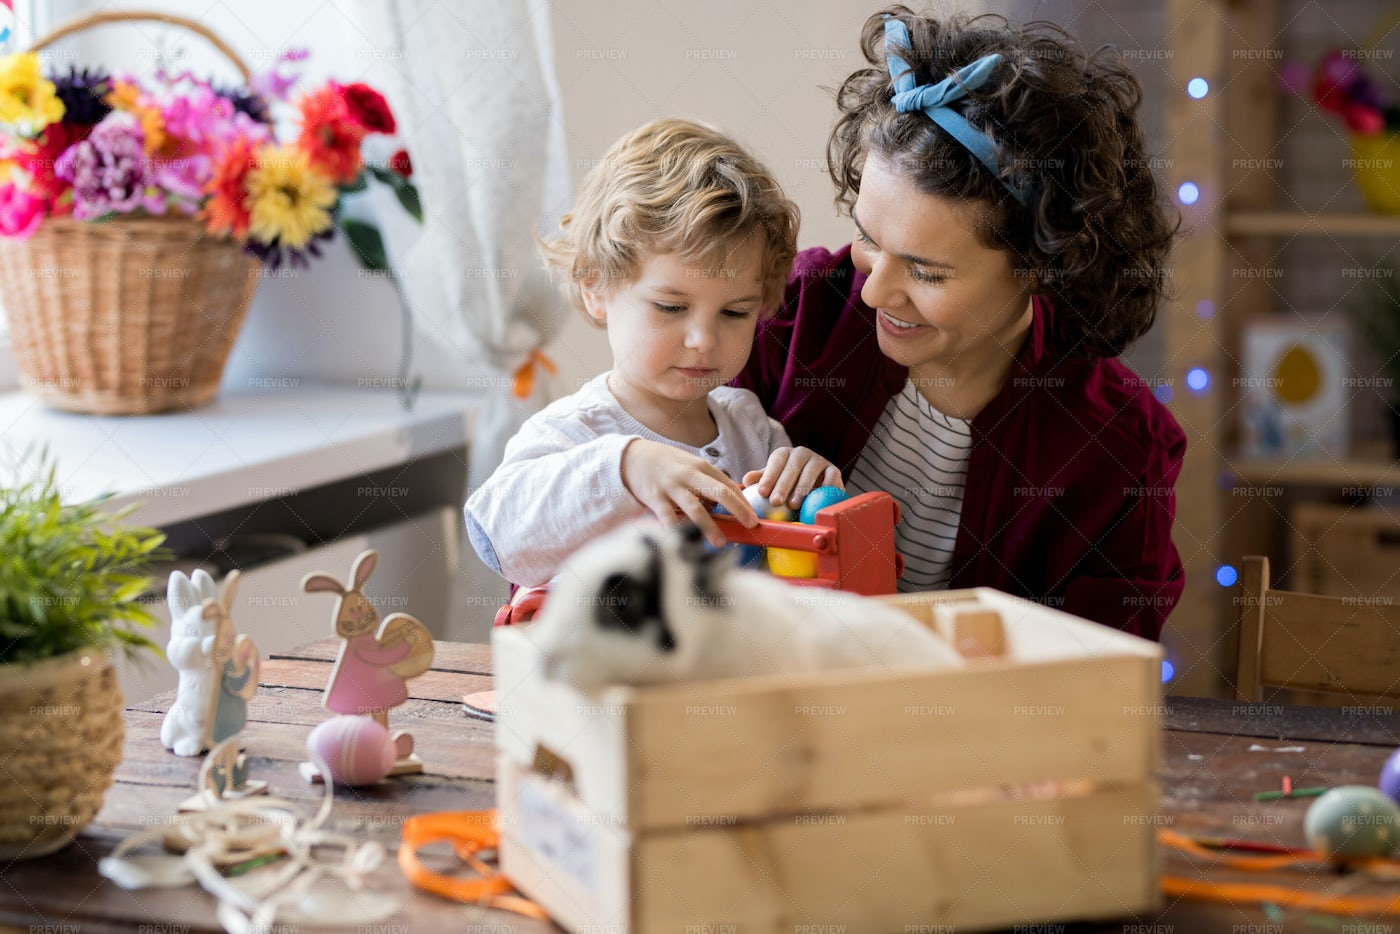 Woman Playing With Son On Easter: Stock Photos